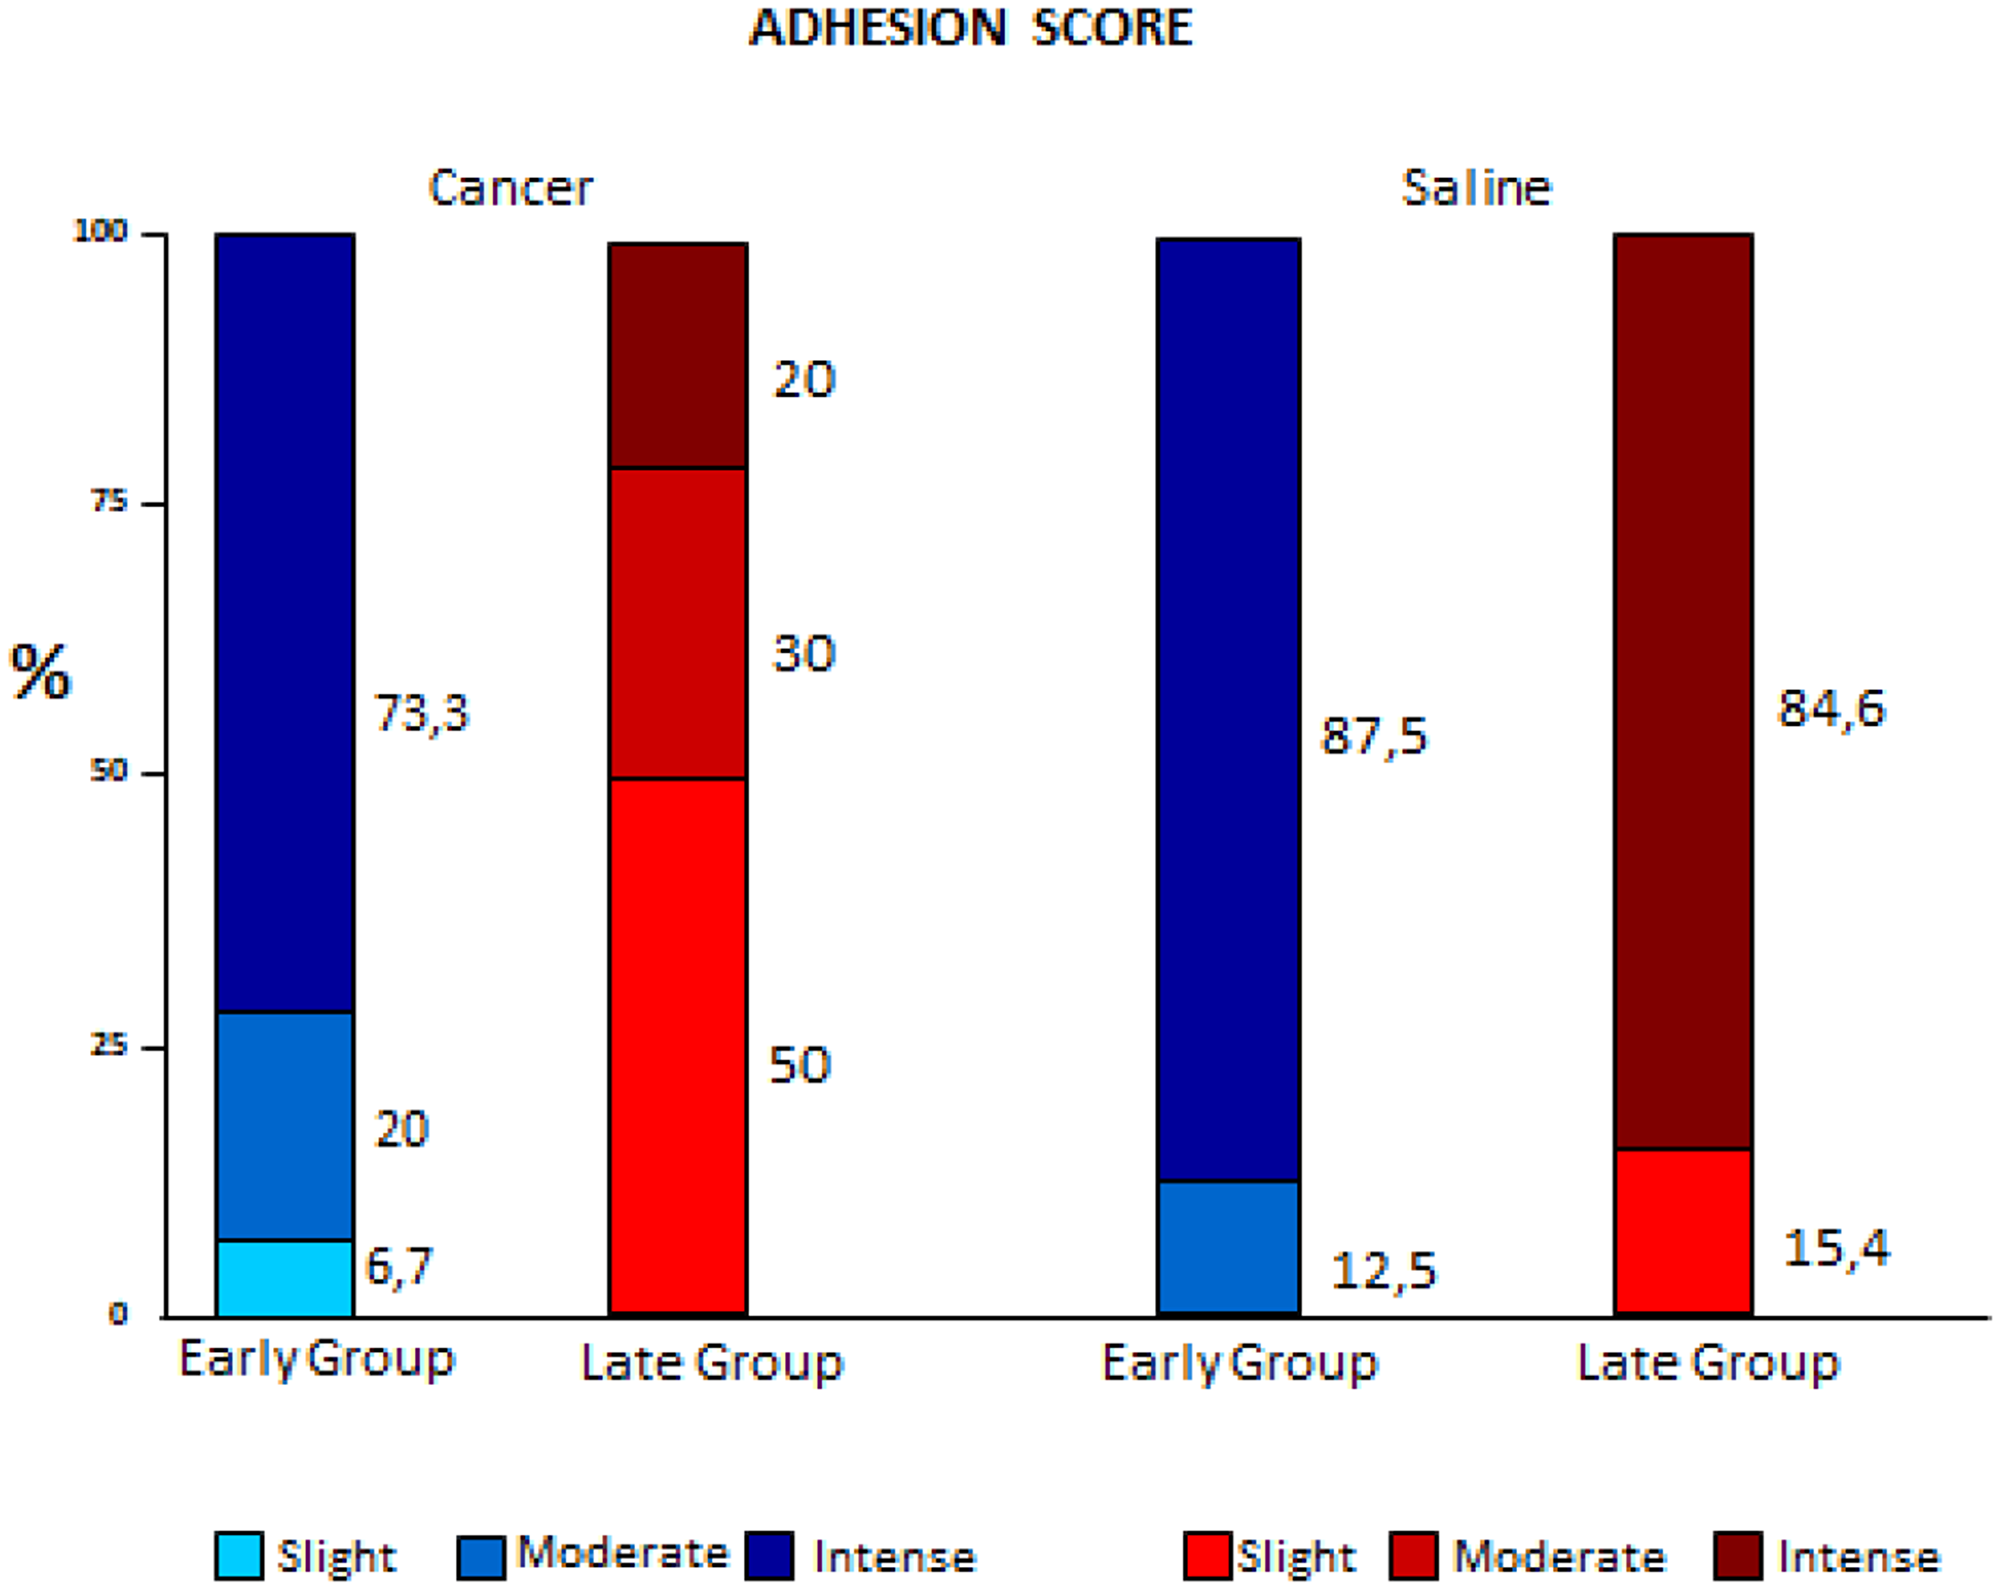 Comparison of variation of adhesion scores between early and late pleurodesis and between cancer and saline groups.